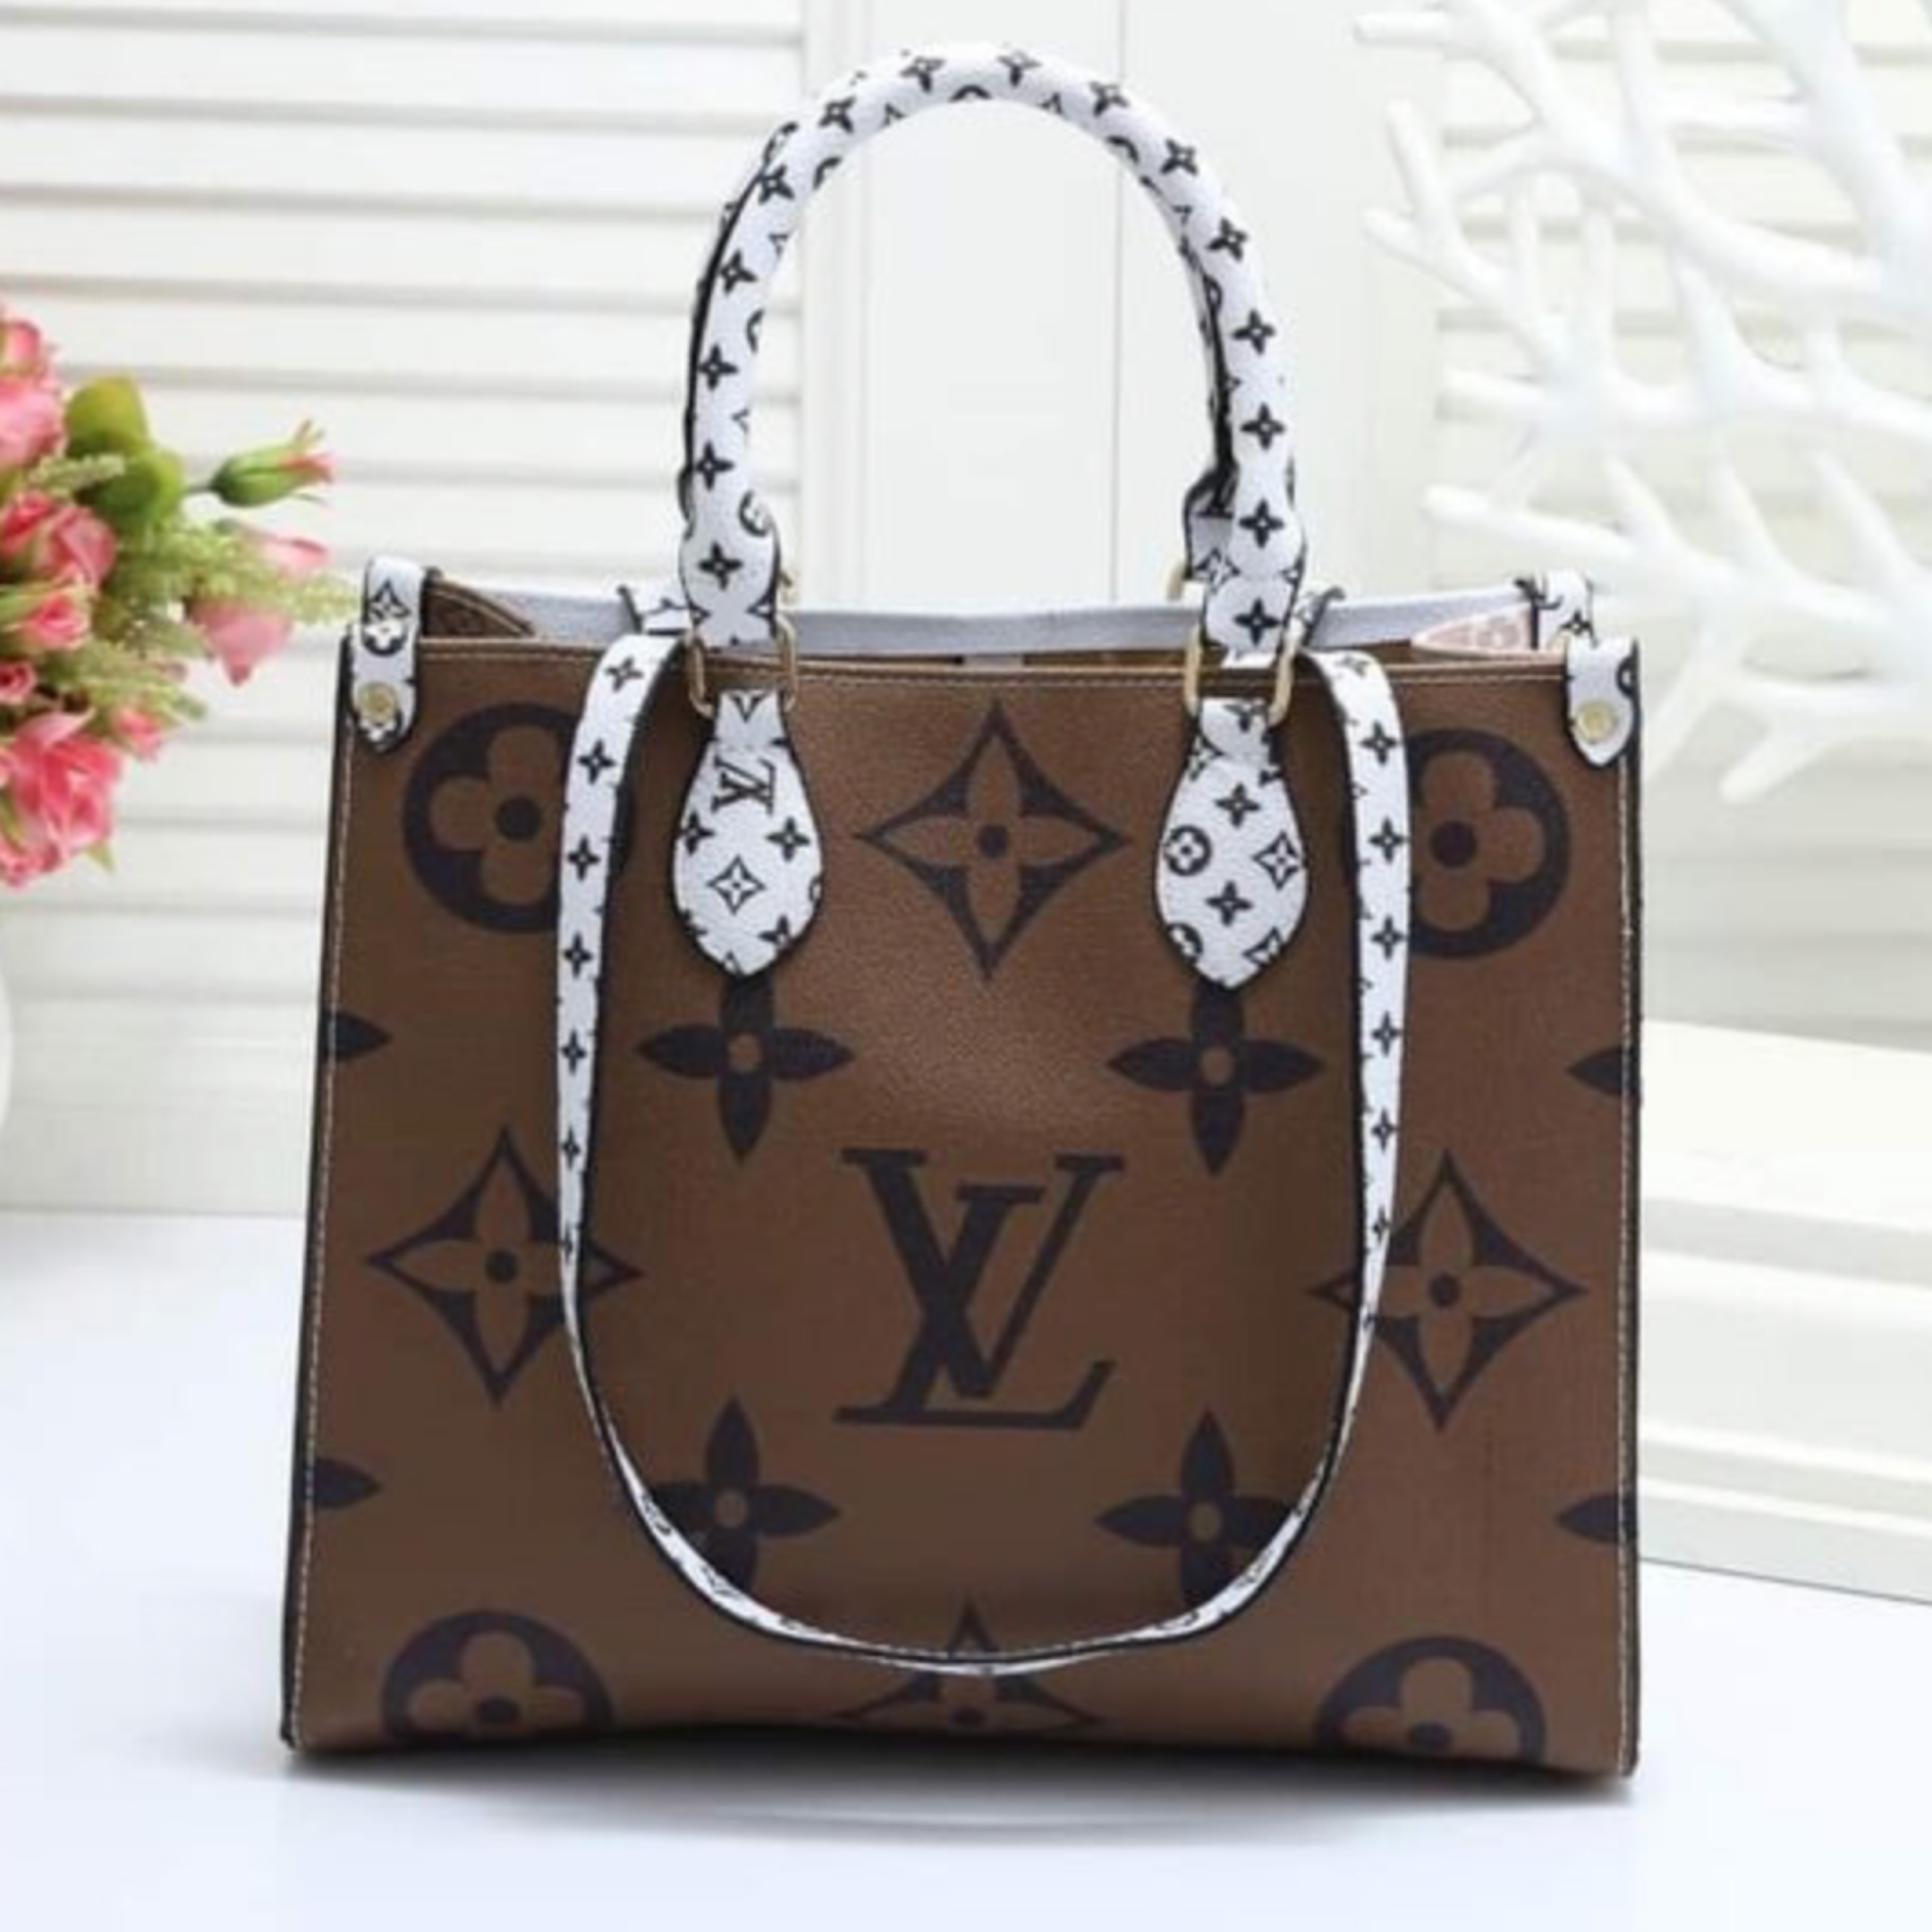 Louis Vuitton Inspired Bag:  UNDER $100